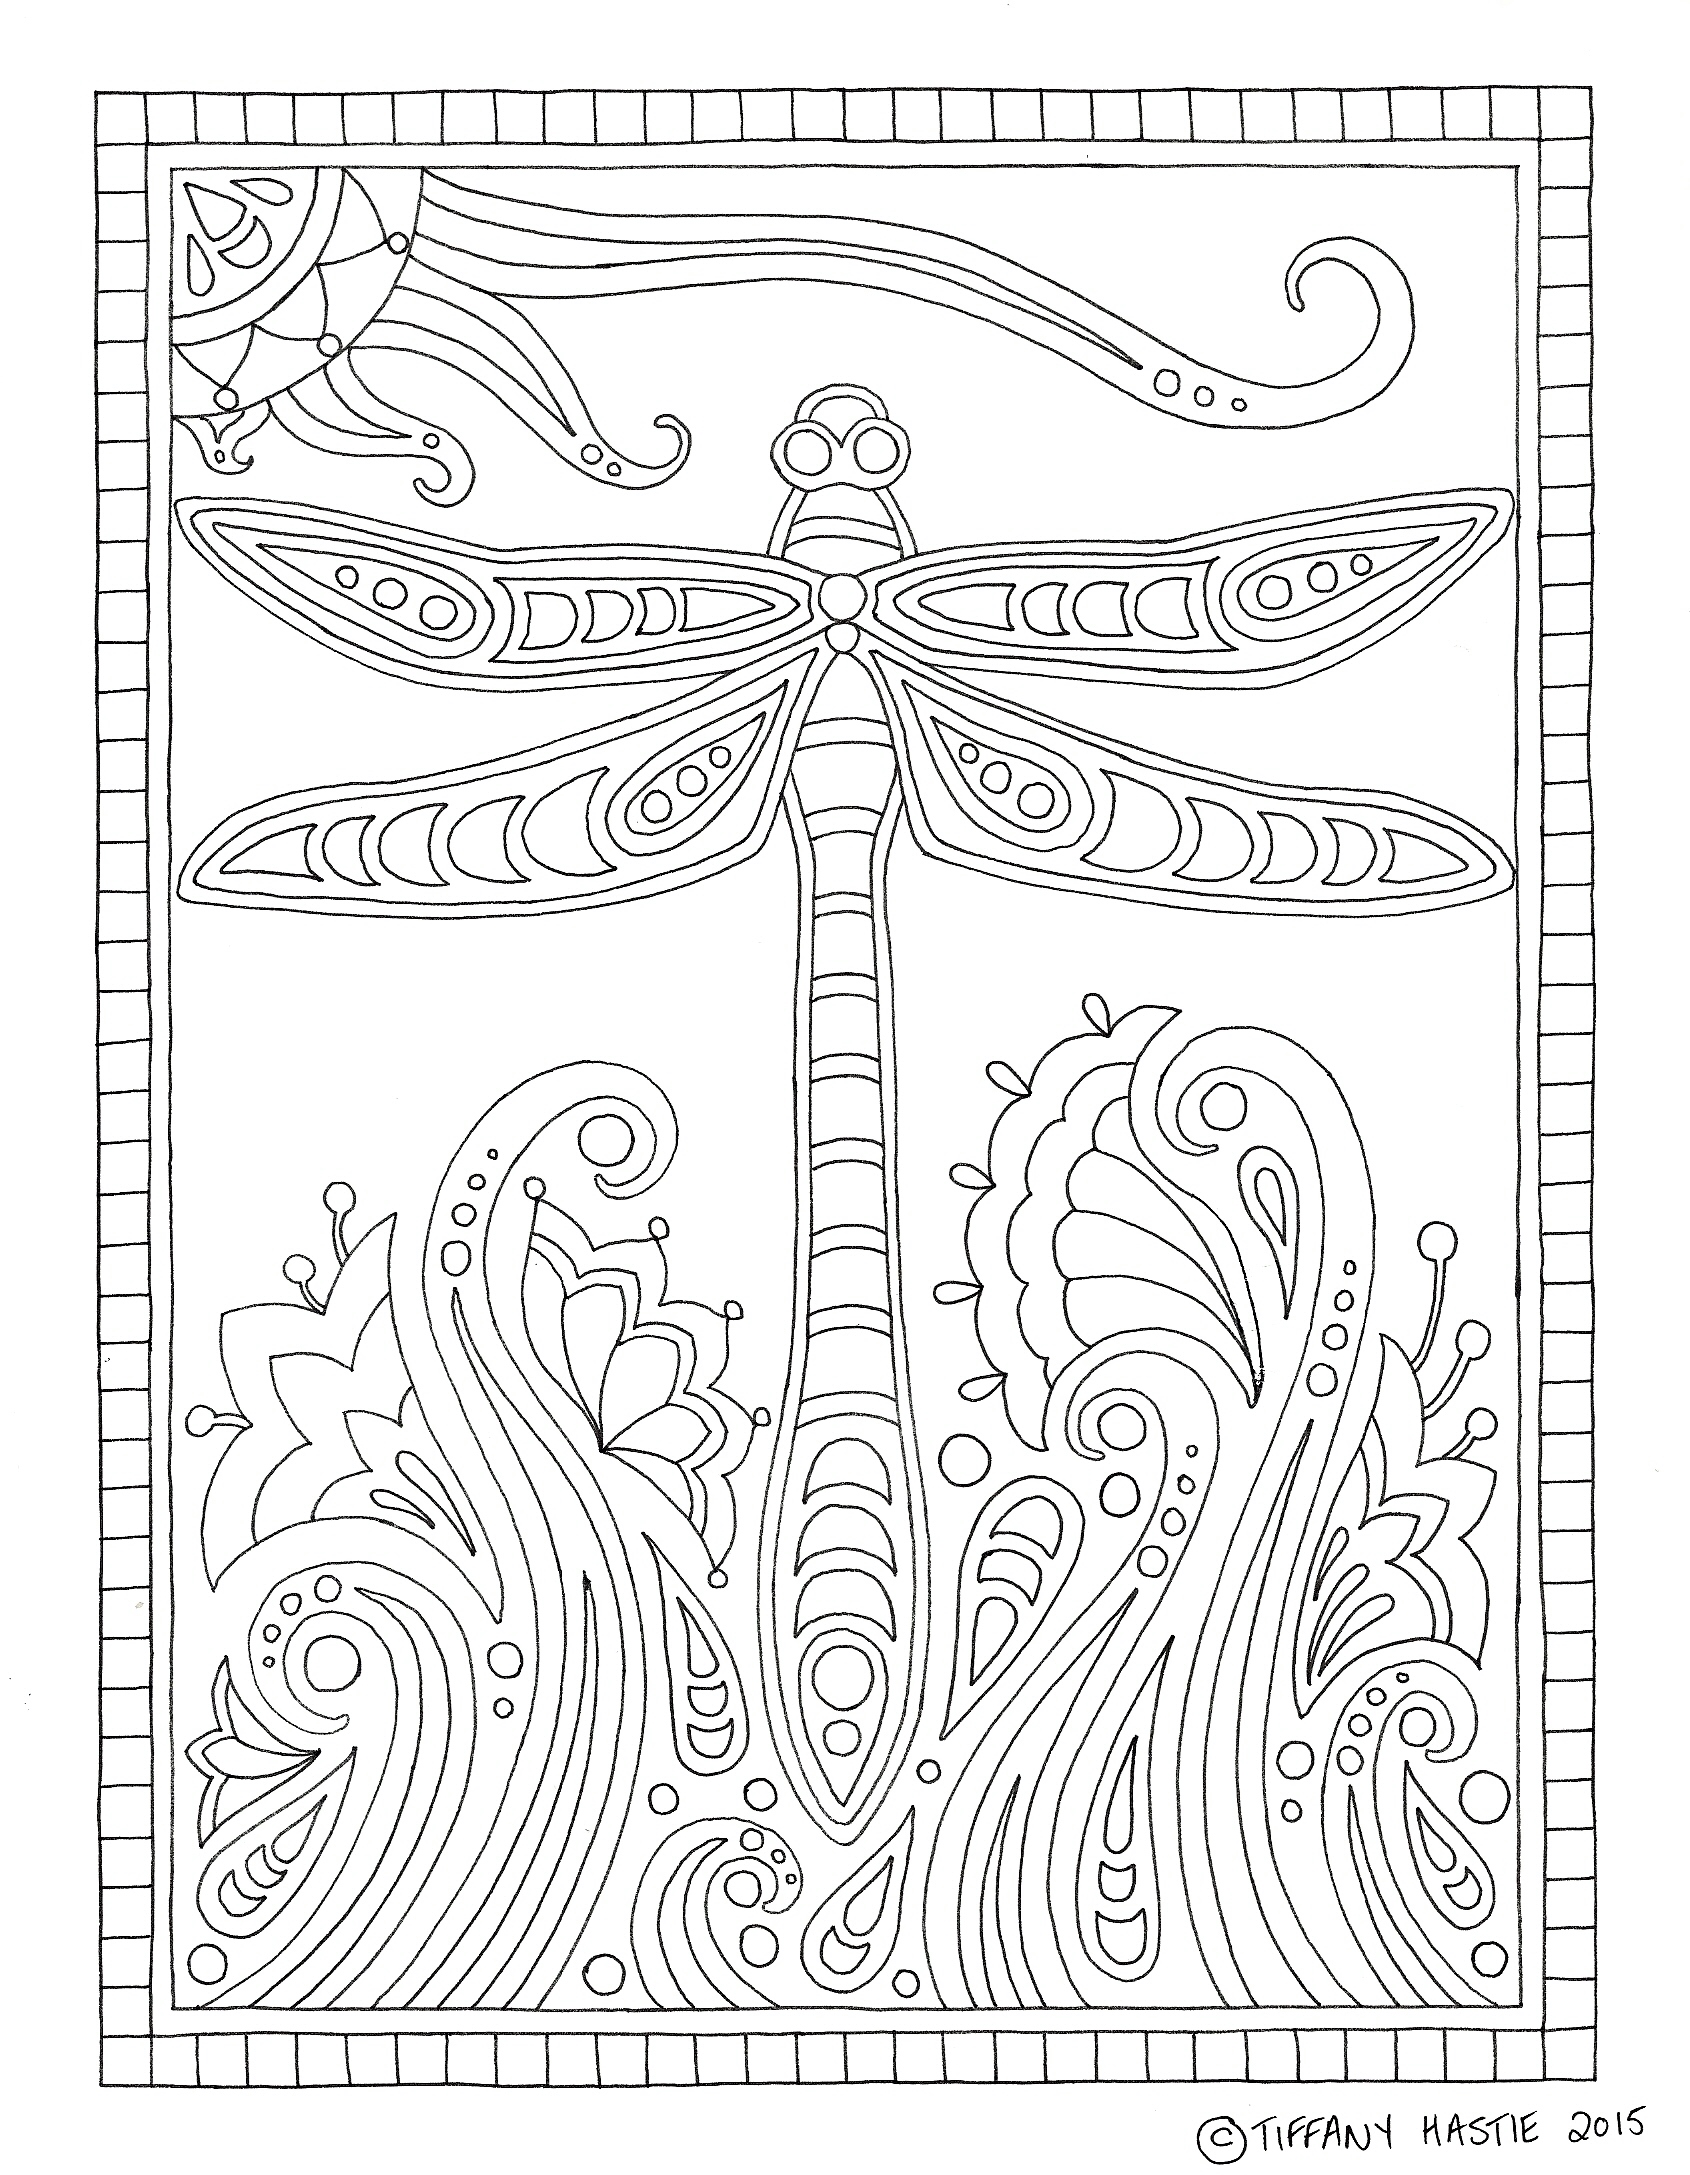 Free colouring pages for adults. Print – colour – relax. | Tiffany ...